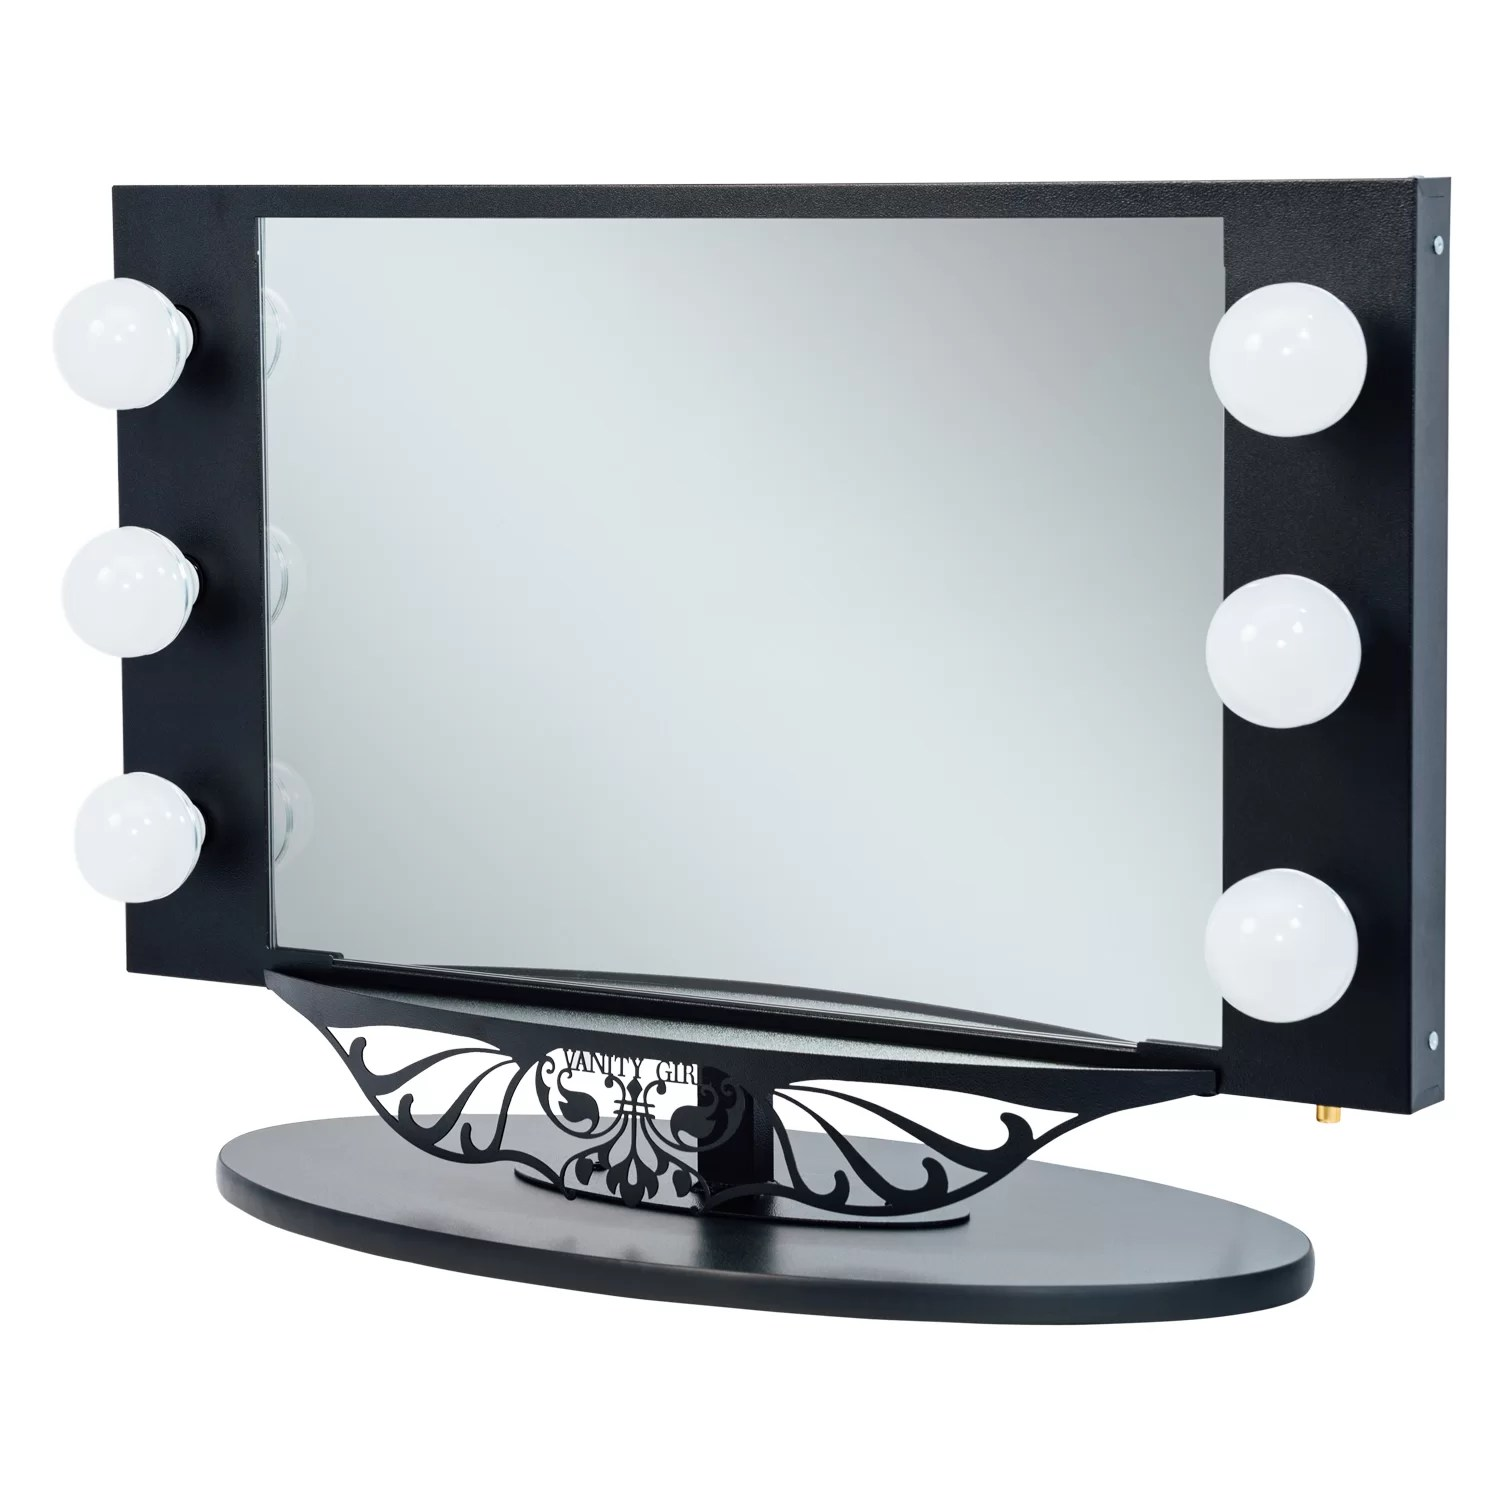 Vanity Mirrors Vanity Girl Hollywood Starlet Lighted Vanity Mirror